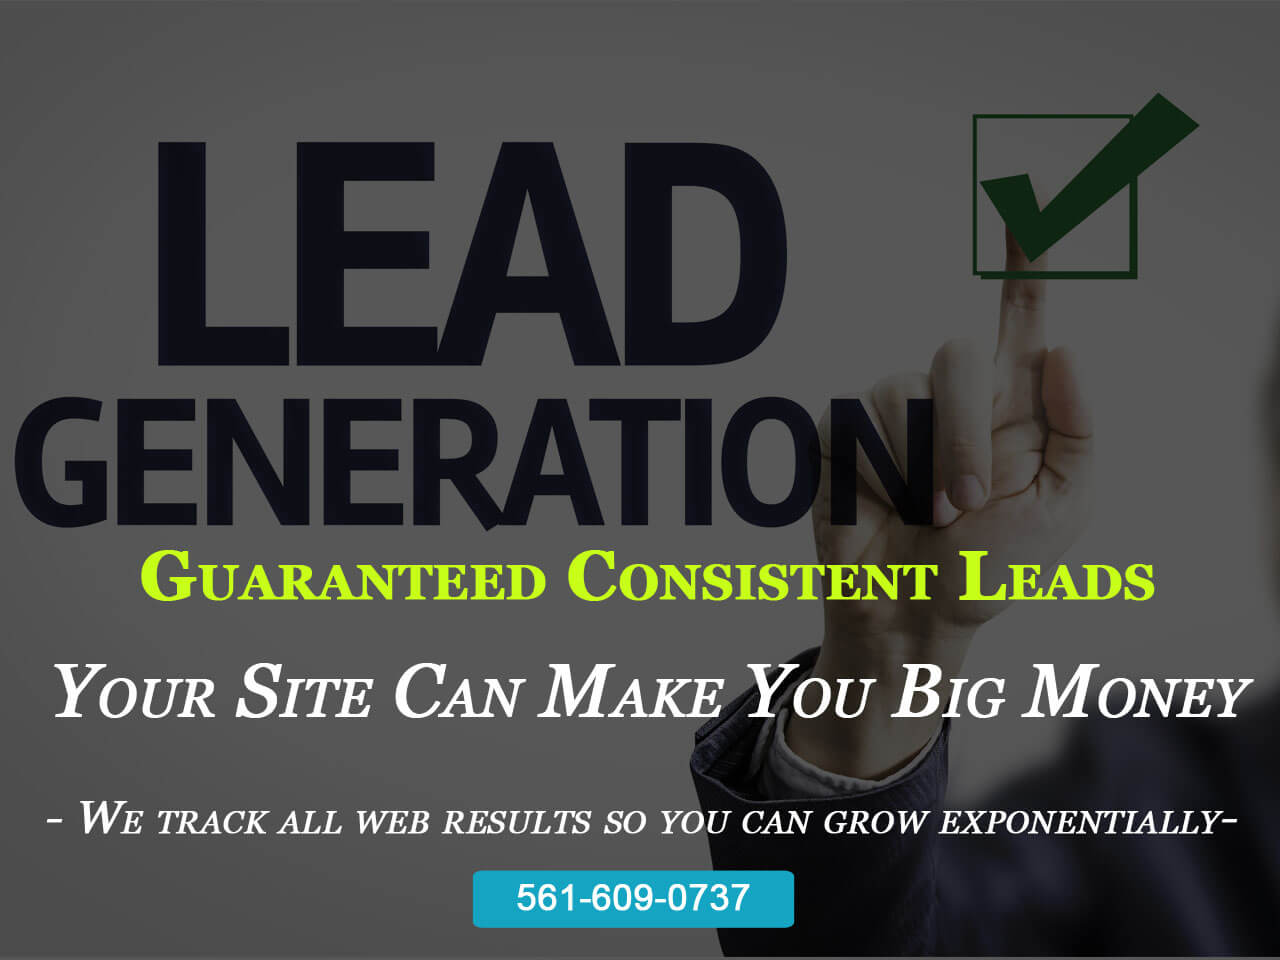 57.1 - guaranteed leads - entreprenew inc - seo and marketing agency - wellington fl - west palm beach fl - seo, mobile marketing, web design, mobile responsive, social media manangement